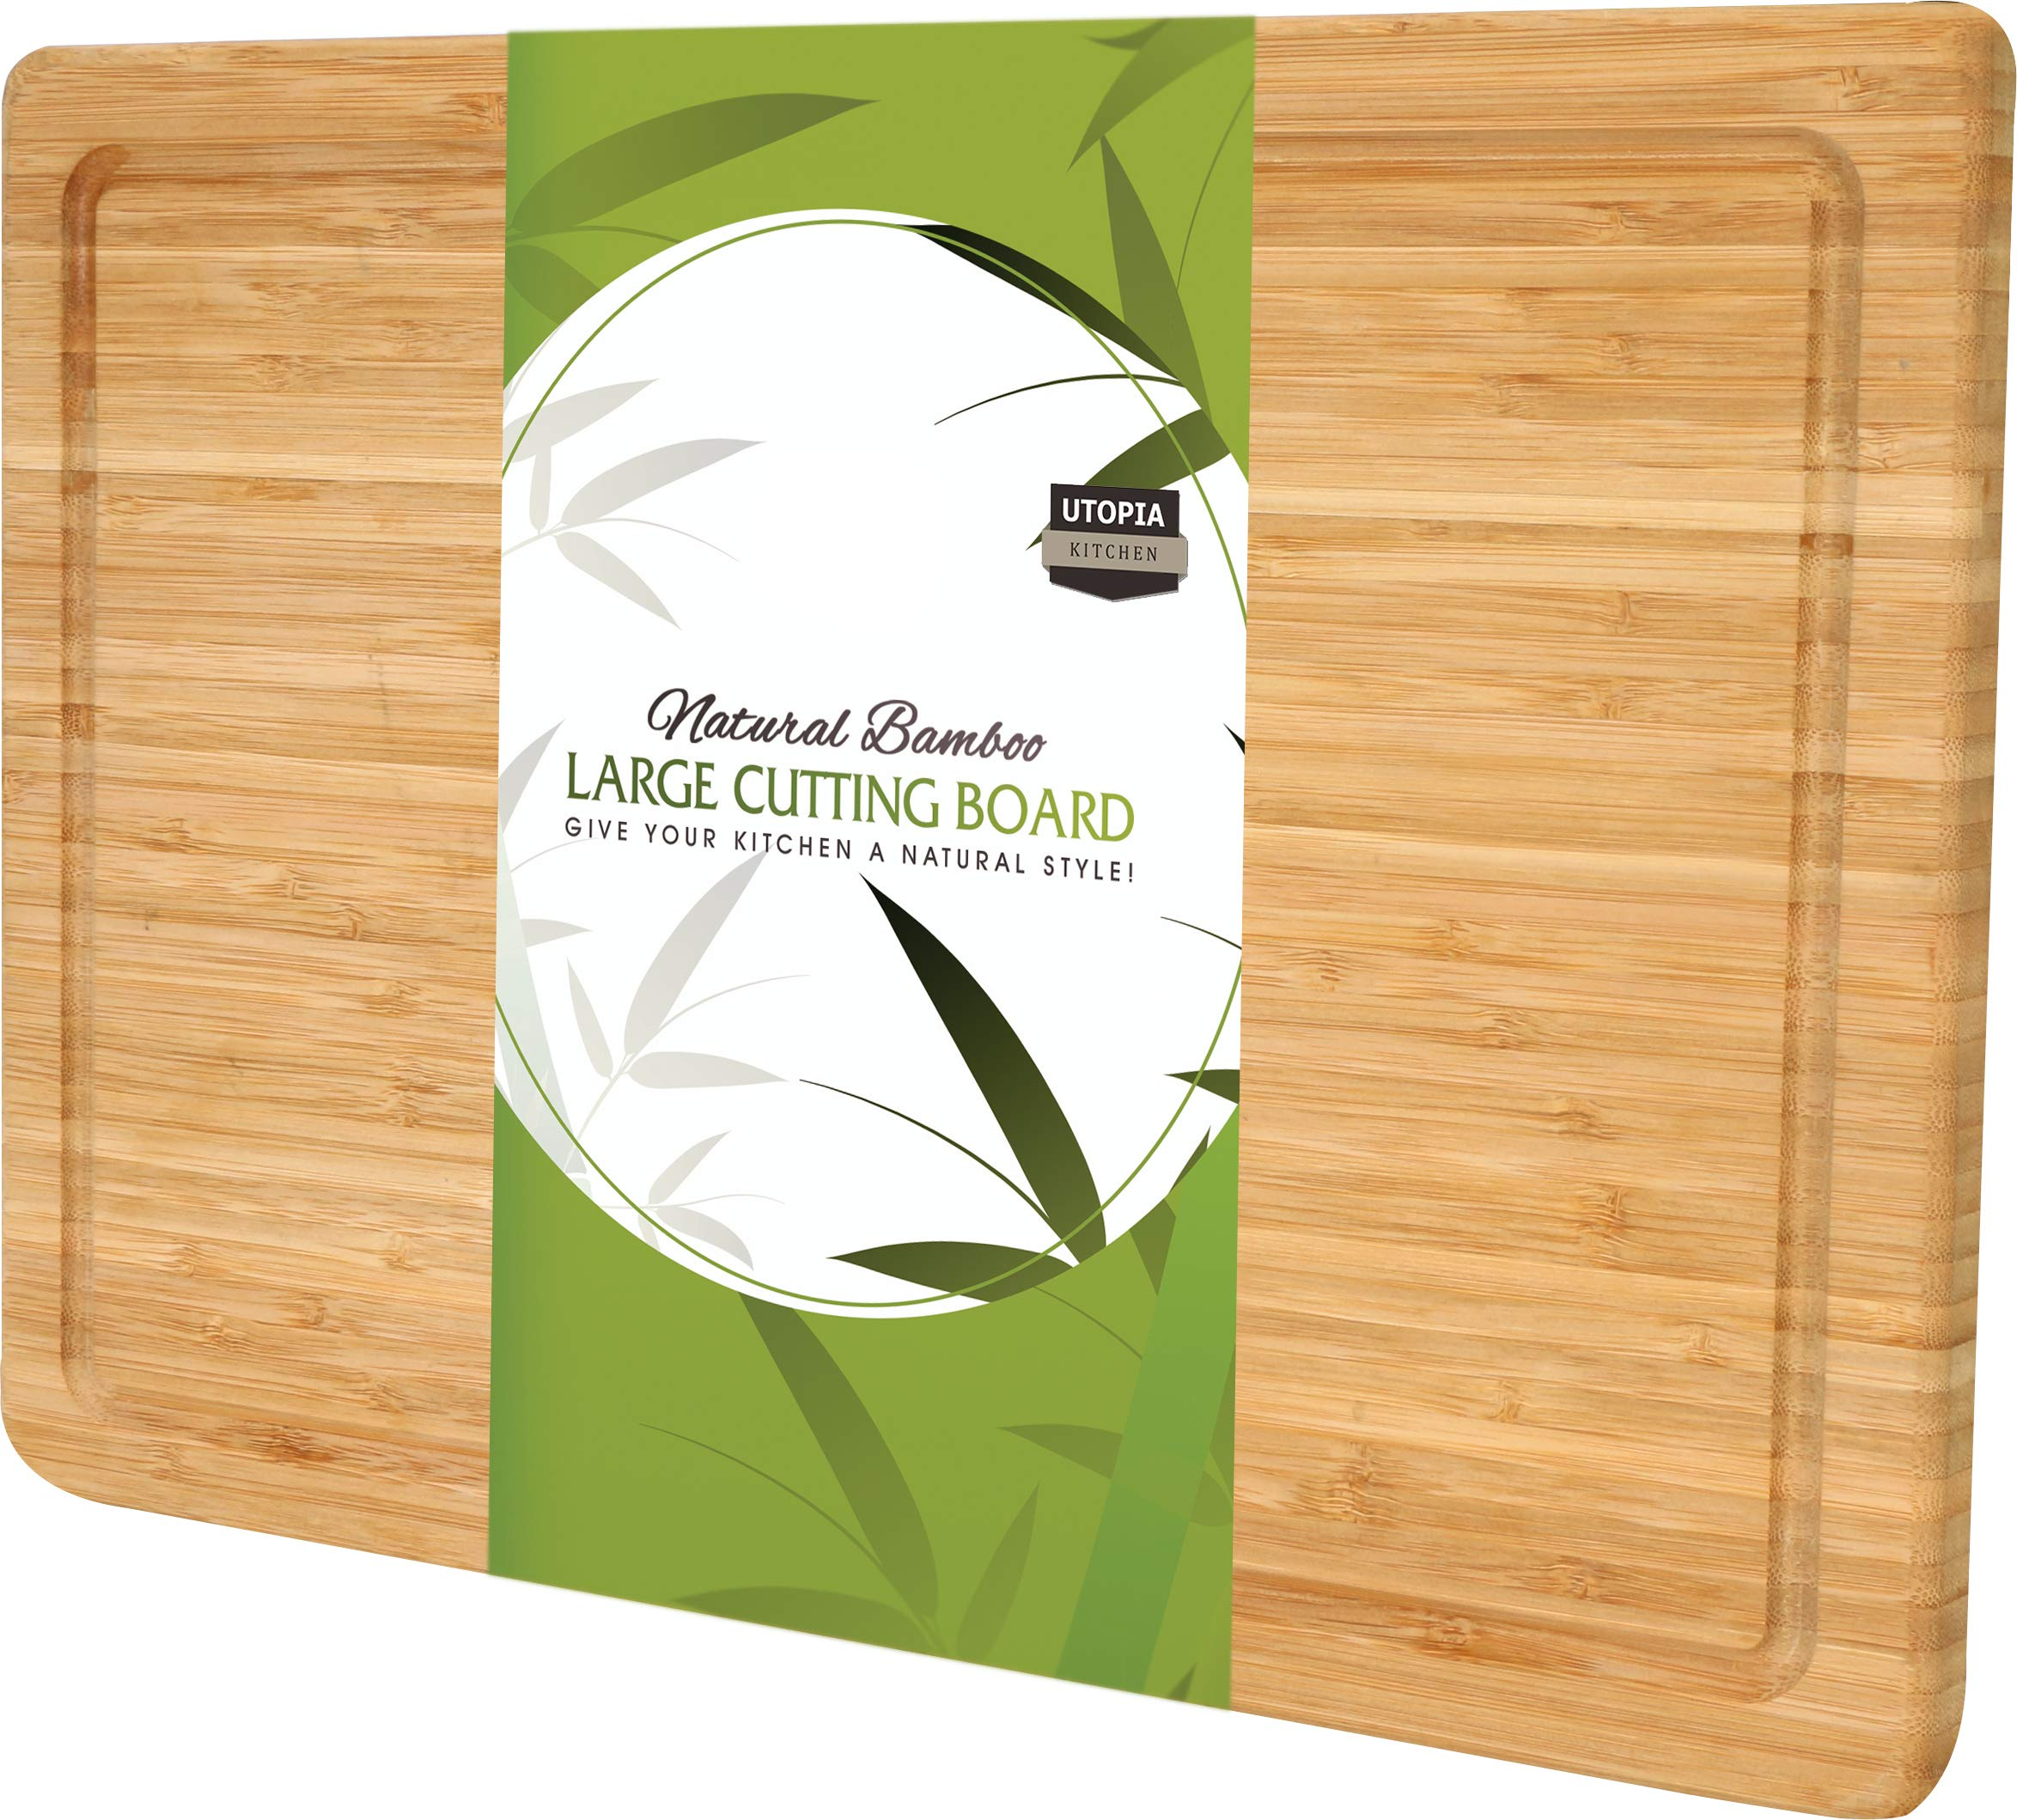 Extra Large Bamboo Cutting Board (17 by 12 inch) - Utopia Kitchen by Utopia Kitchen